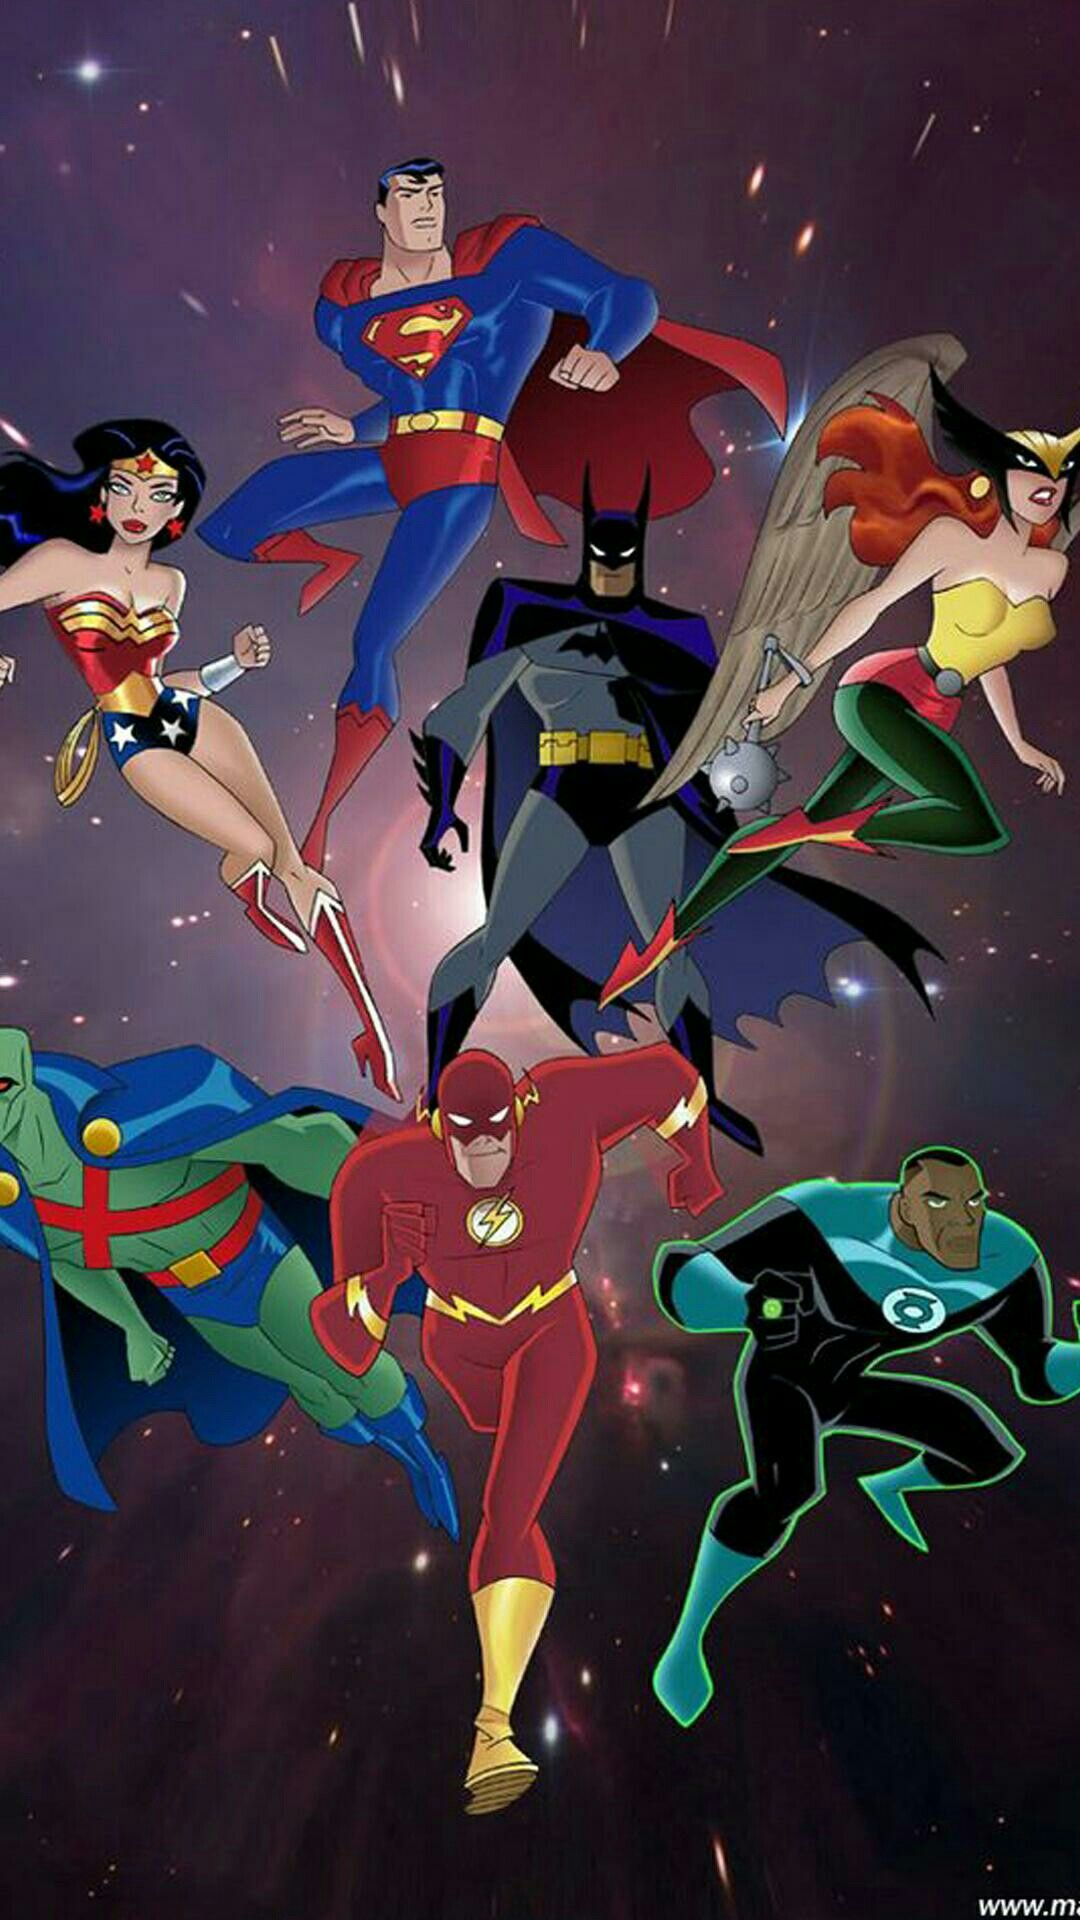 Pin by Allen B. on DC Animation series, Justice league